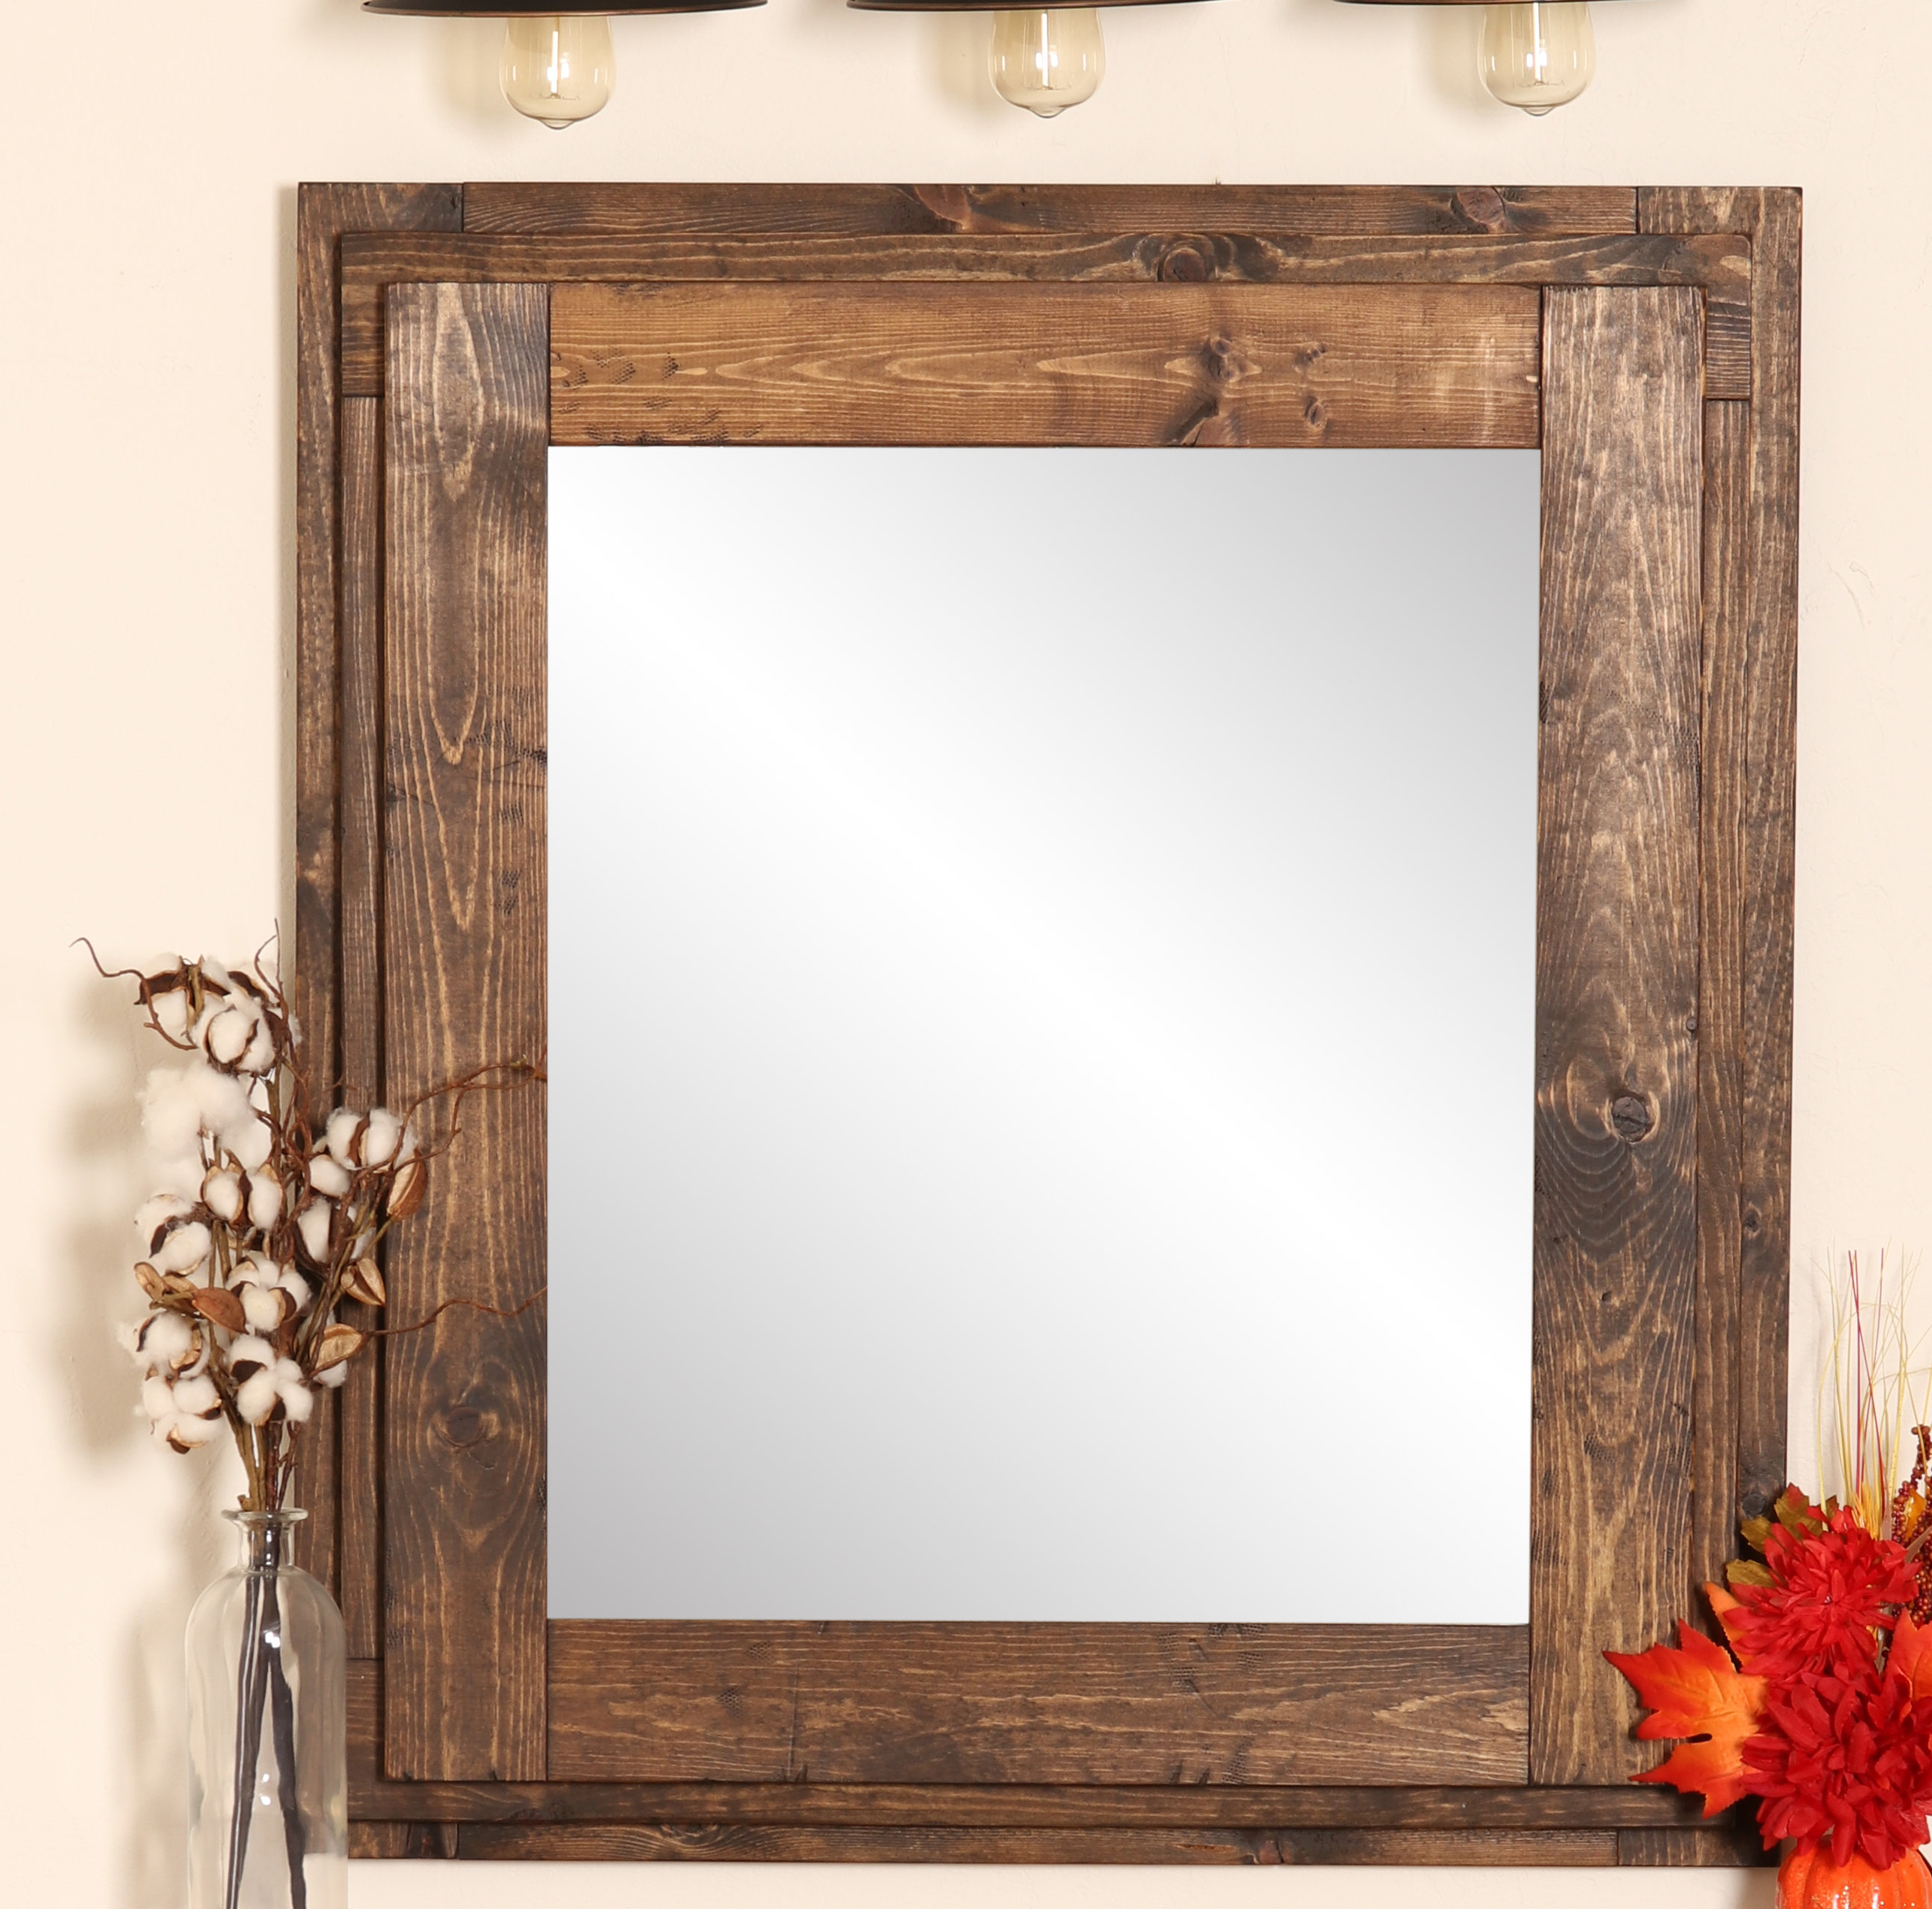 Vintage Farmhouse Mirrors | Wayfair With Regard To Kist Farmhouse Wall Mirrors (View 10 of 20)